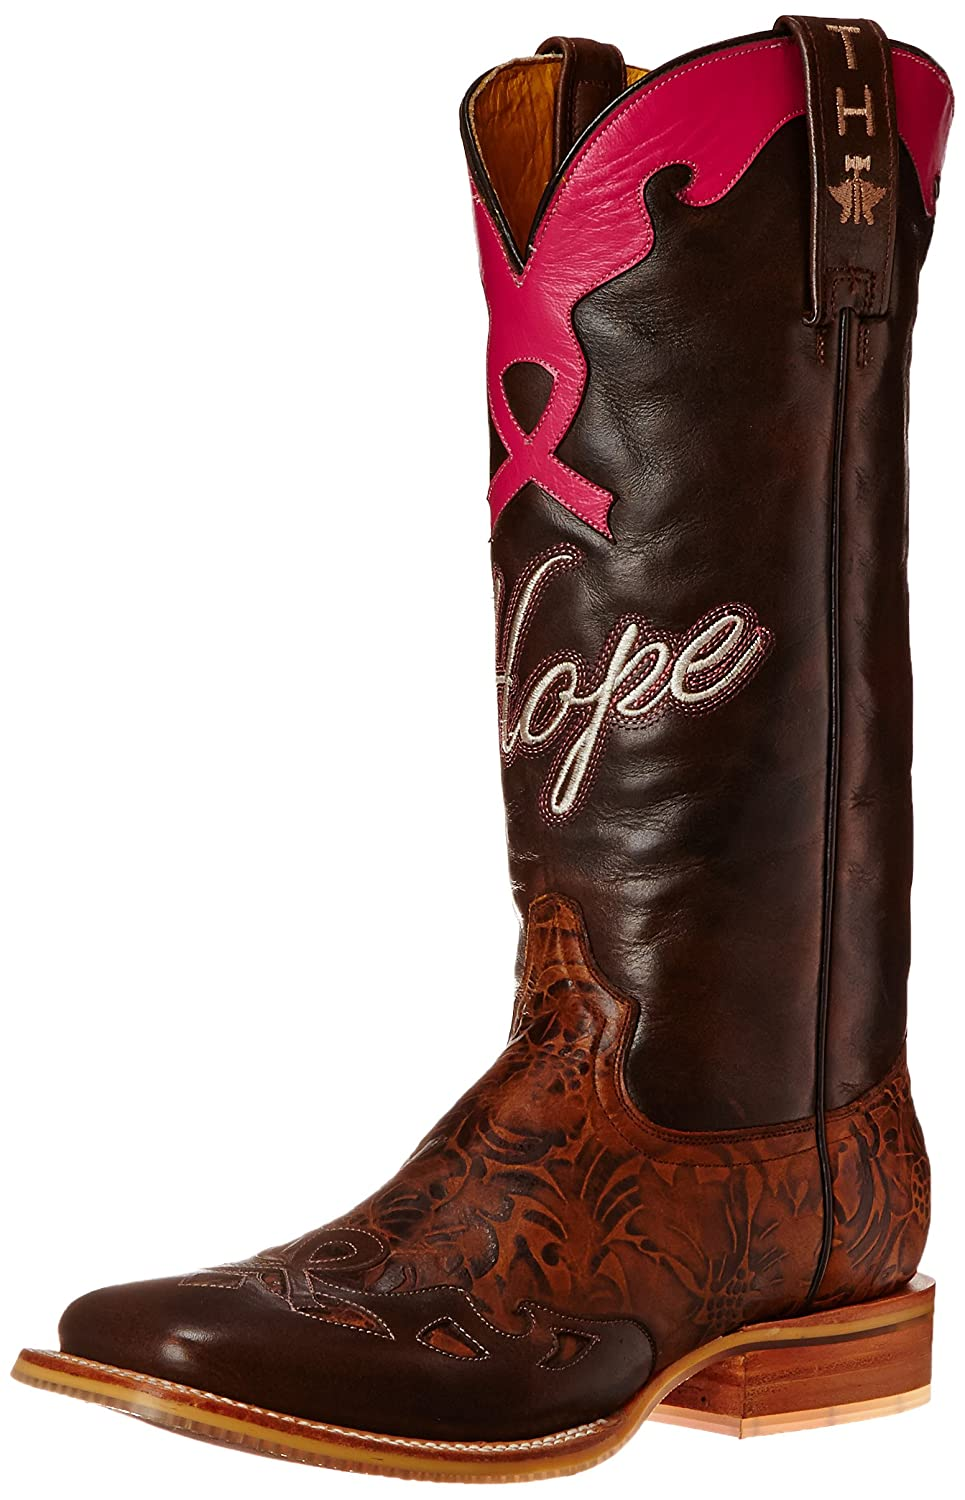 Tin Haul Shoes Women's Hope Western Boot B00WHUR2YS 10.5 B(M) US|Brown/Pink